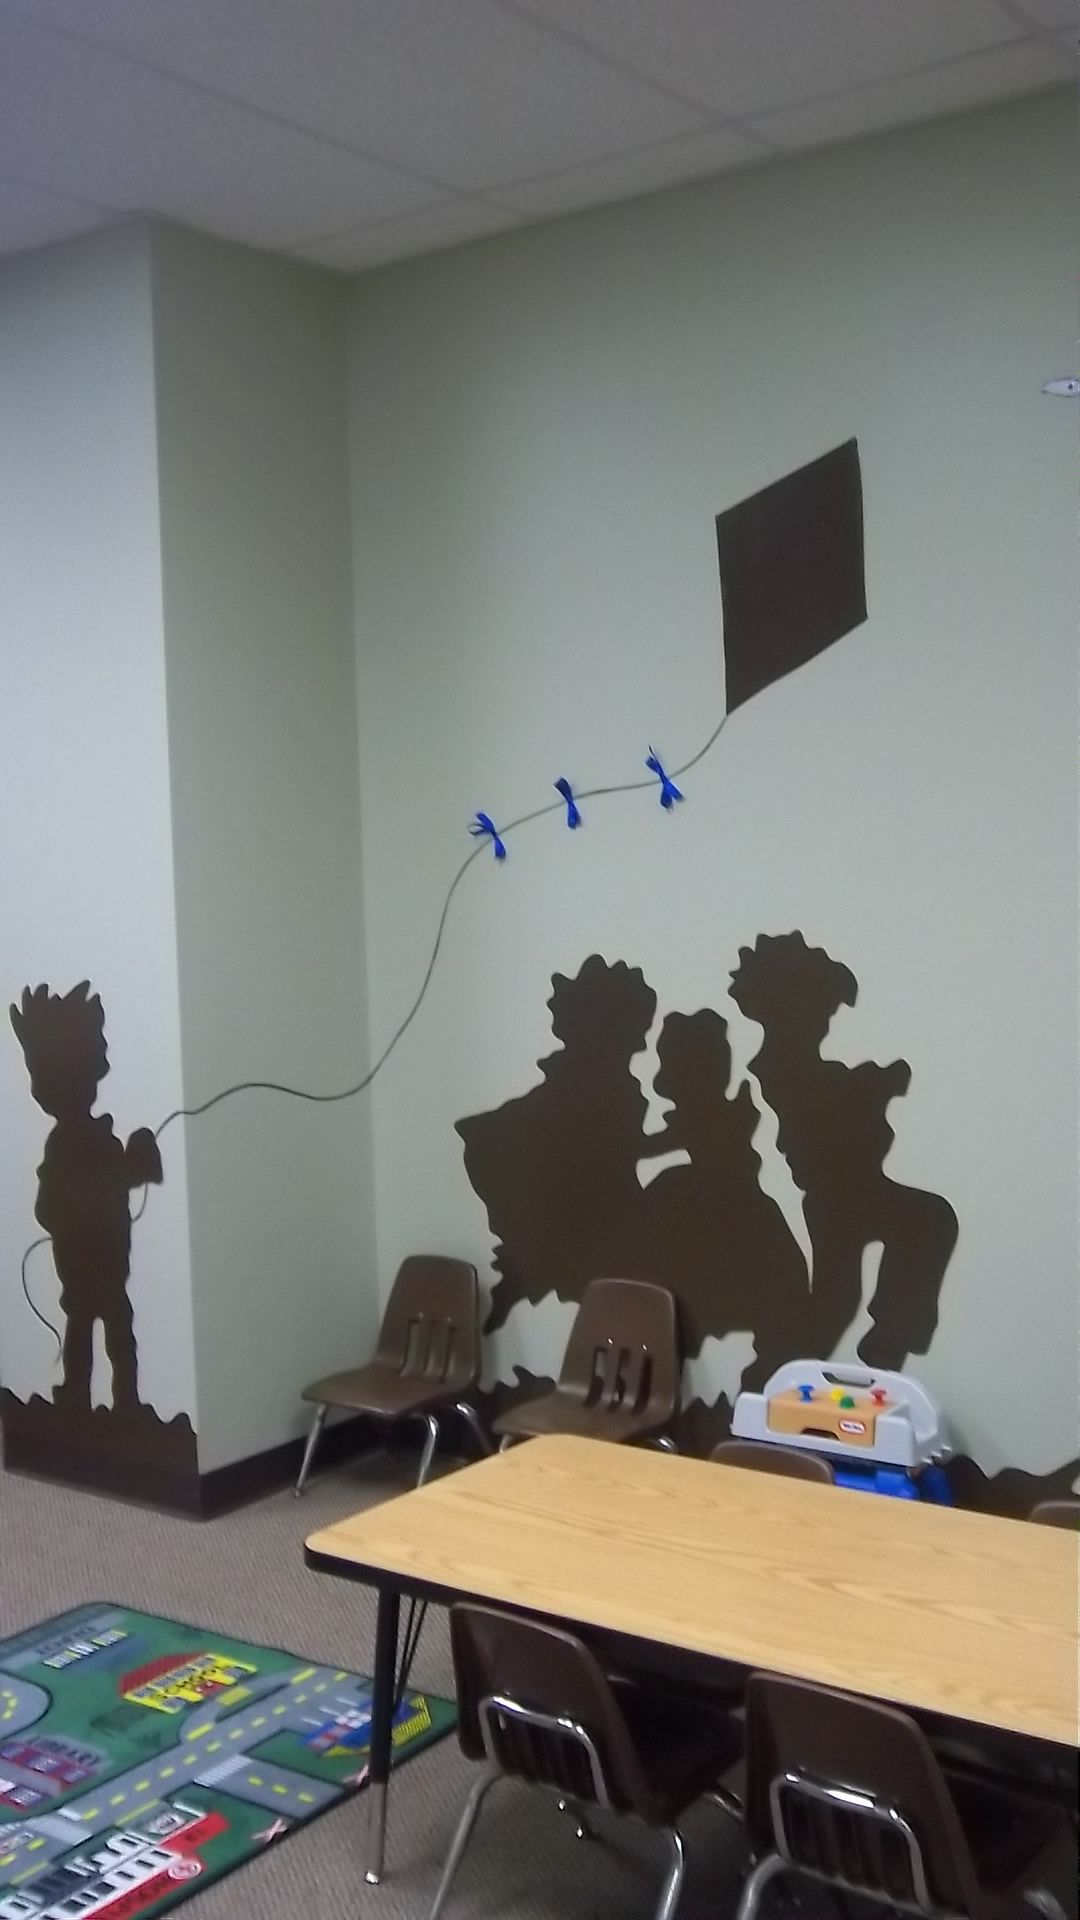 Pin On Kid Rooms: Silhouette Of Children In Church Nursery.